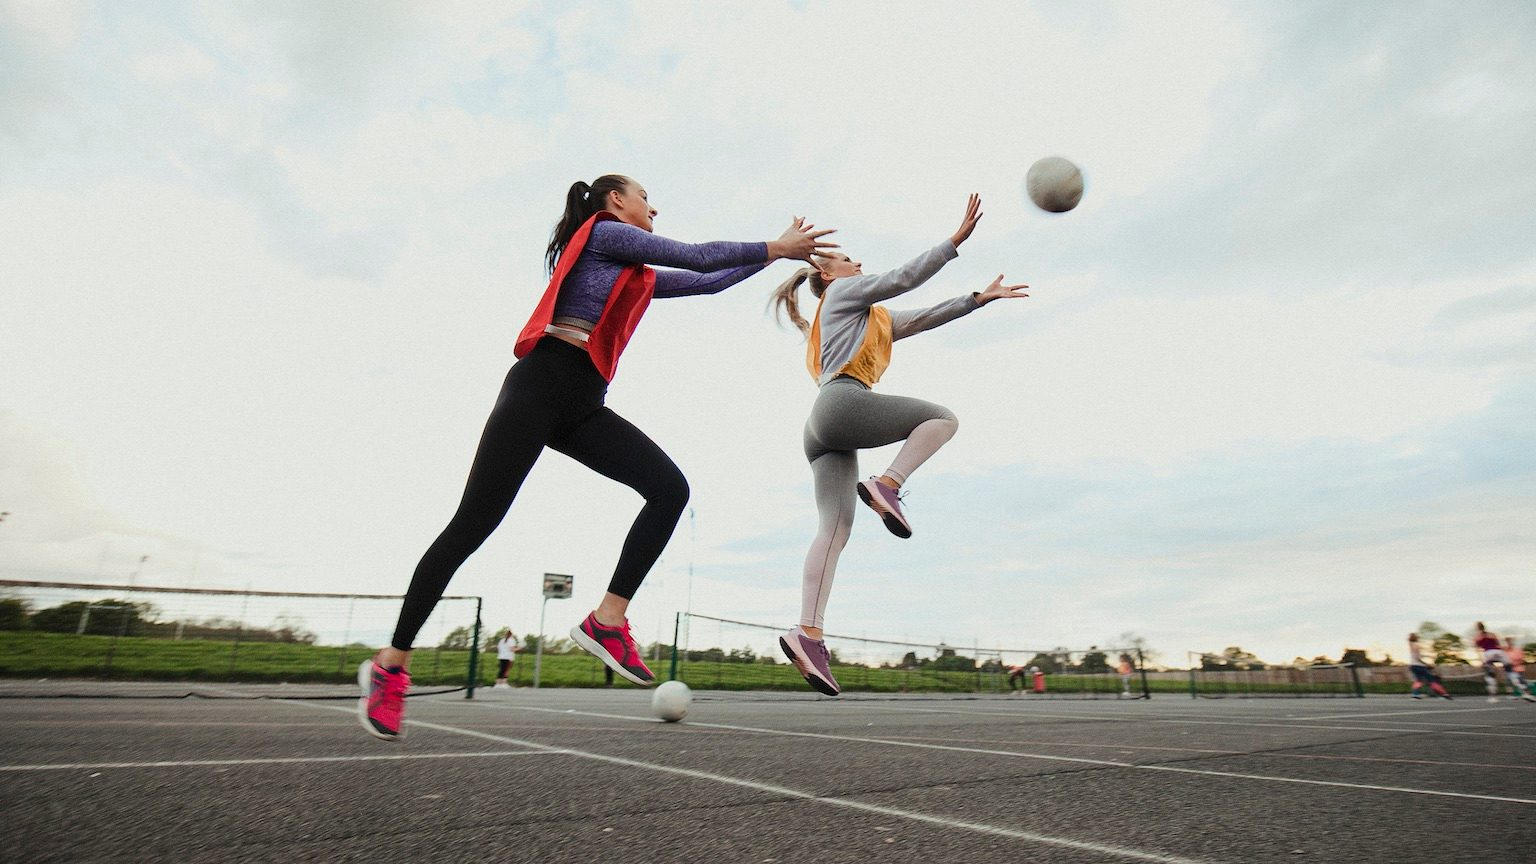 Two women play a game of netball together. They are both wearing sports bibs as one tries to take the netball from the other.